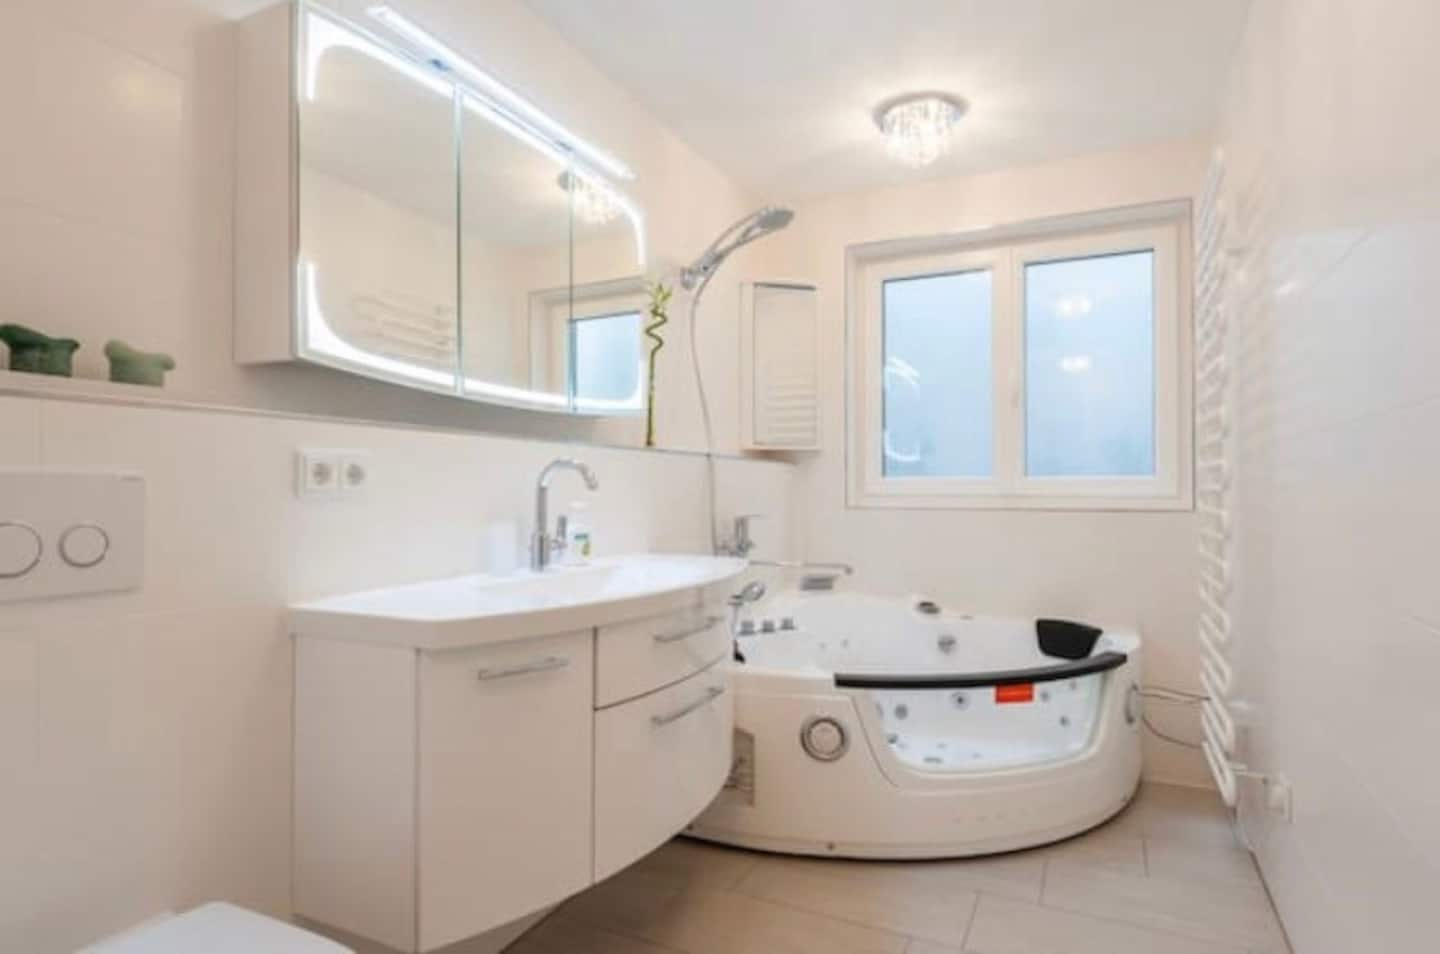 Munich Airbnb with Whirlpool